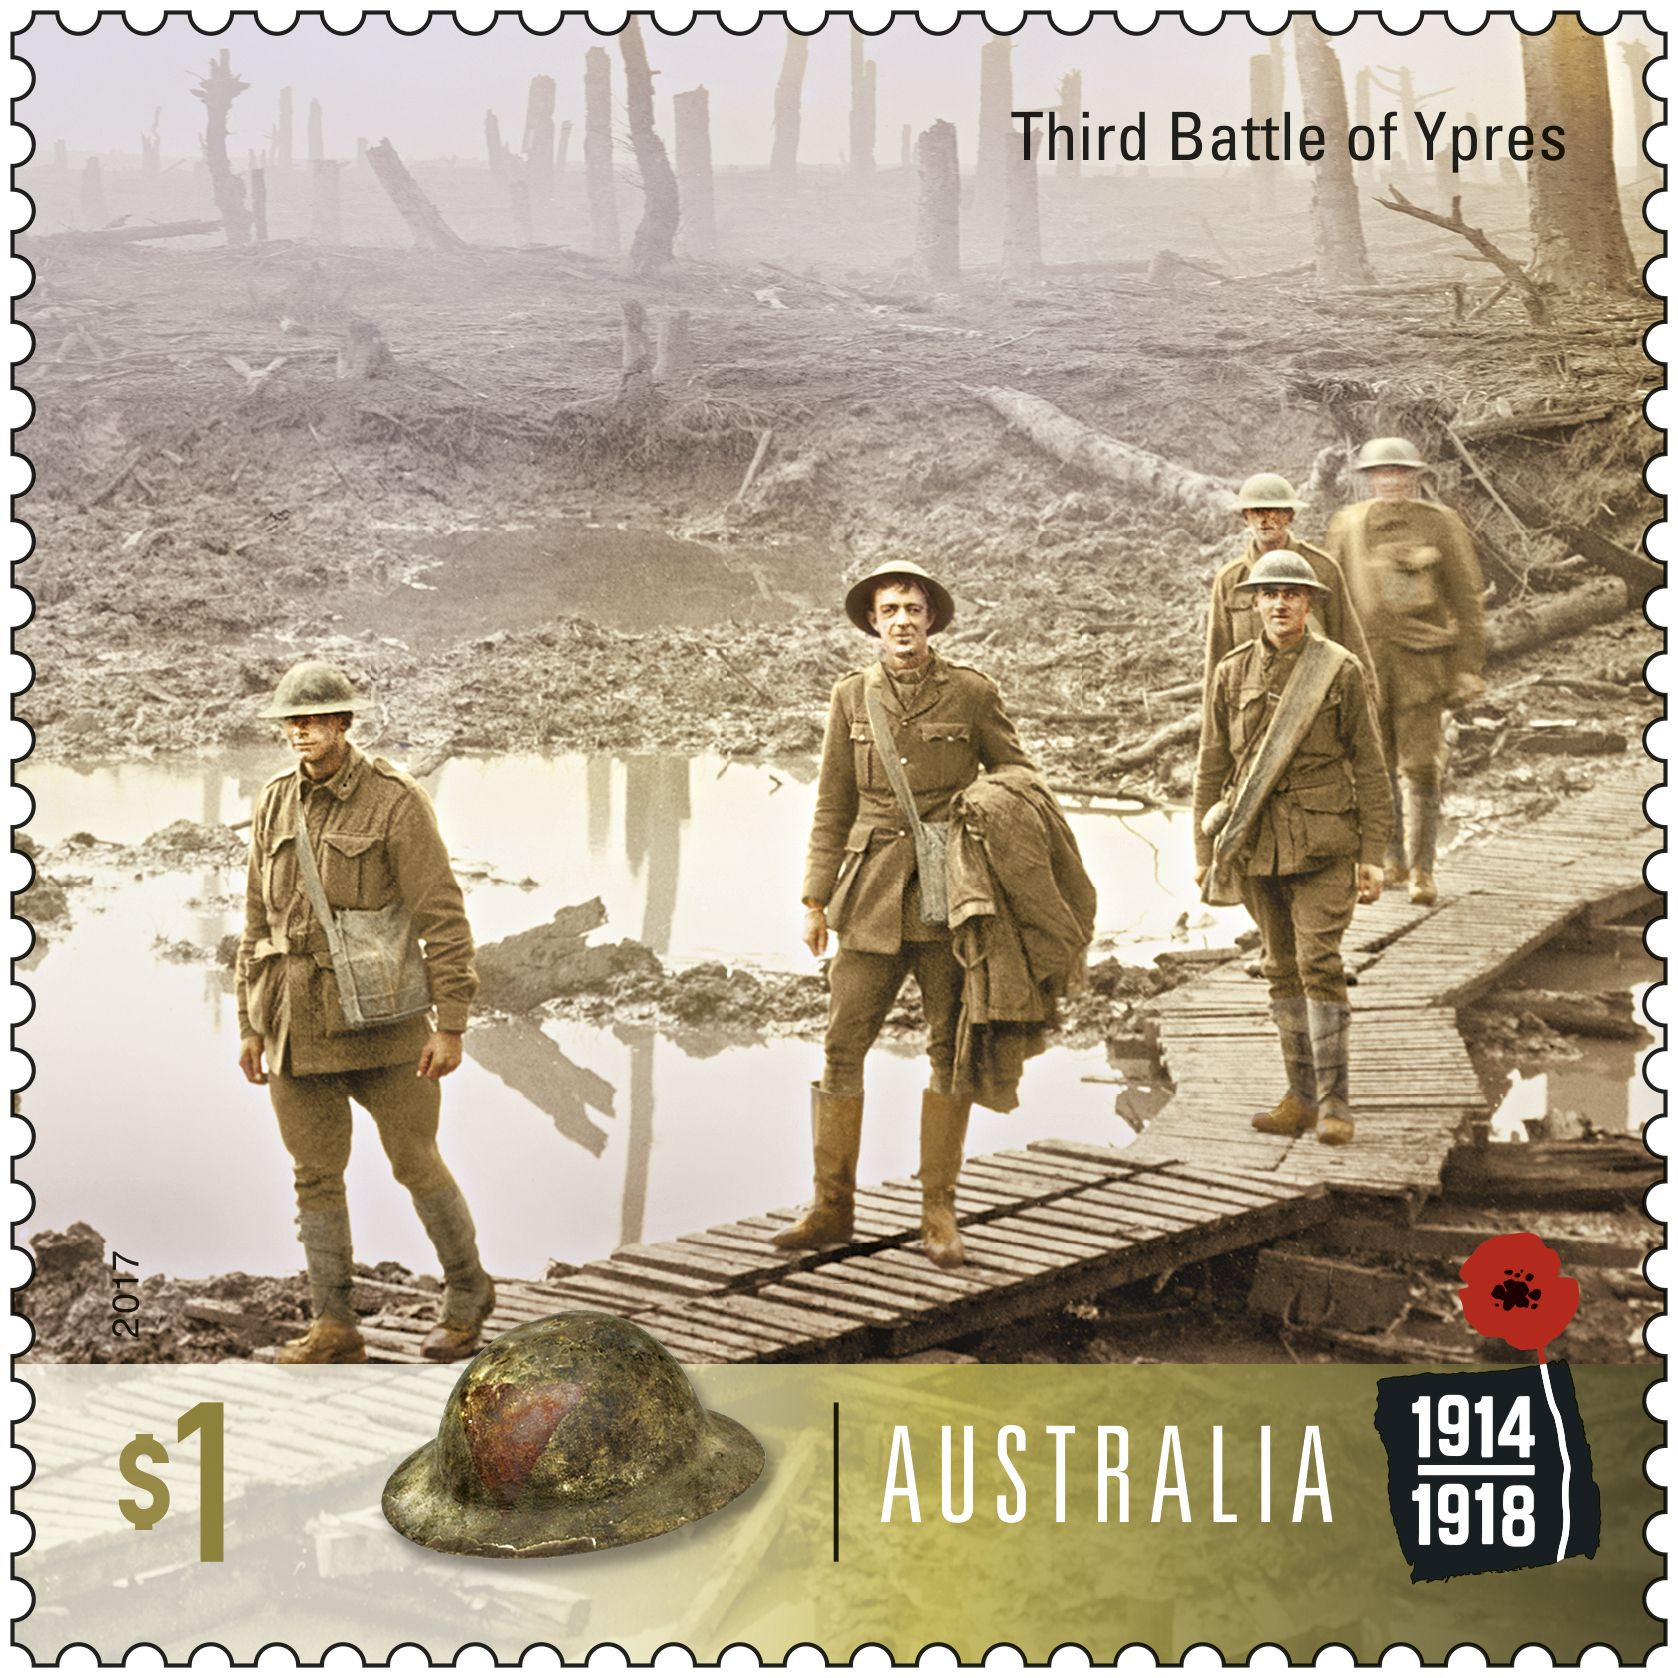 Stamp Issues Stamp, Australian fauna, Battle of ypres